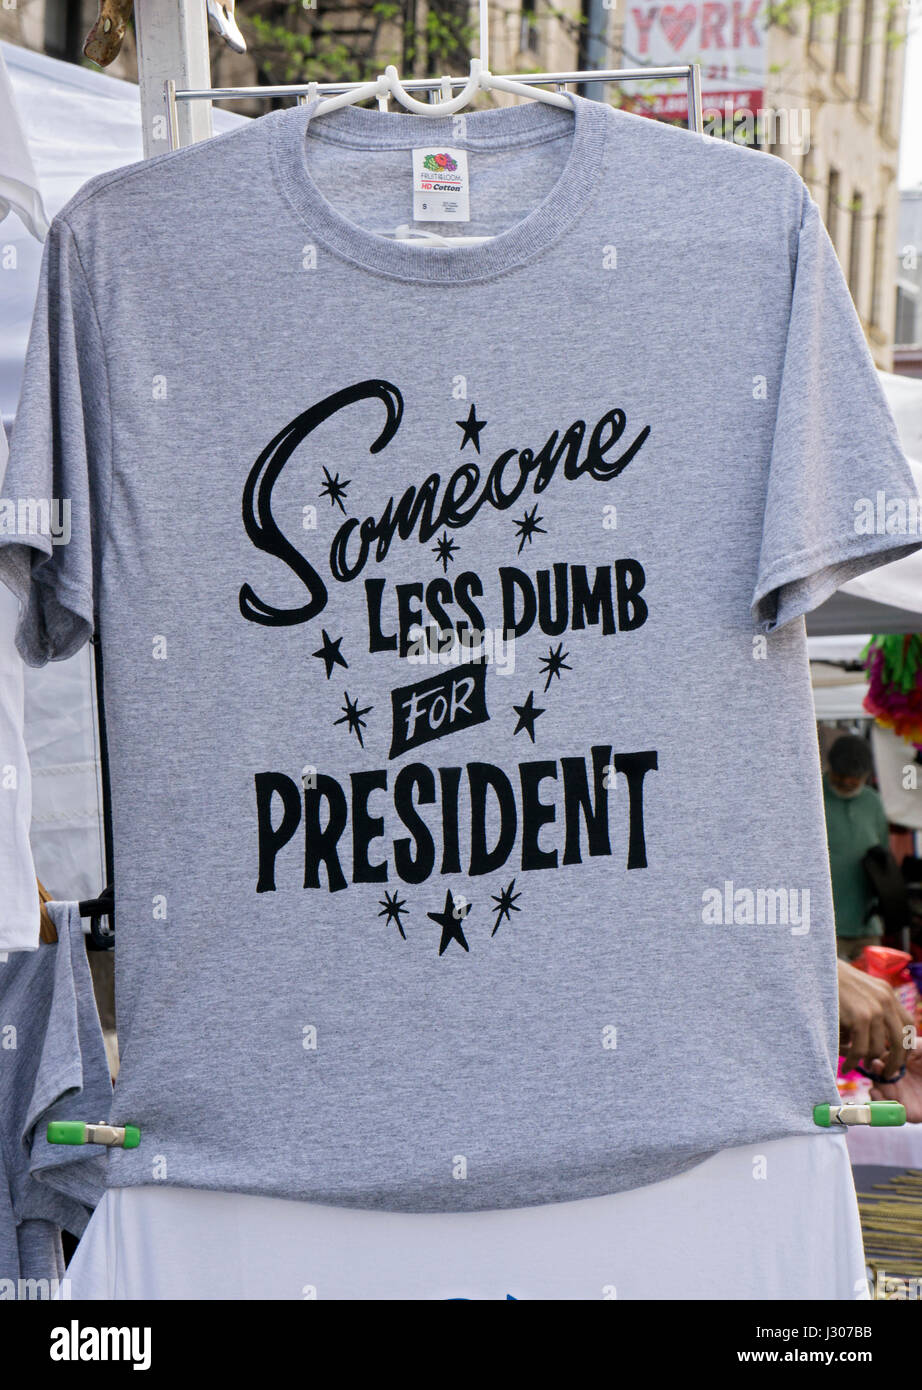 A tee shirt ridiculing President Donald Trump for sale at the Eighth Avenue Street Fair in the Chelsea section of - Stock Image